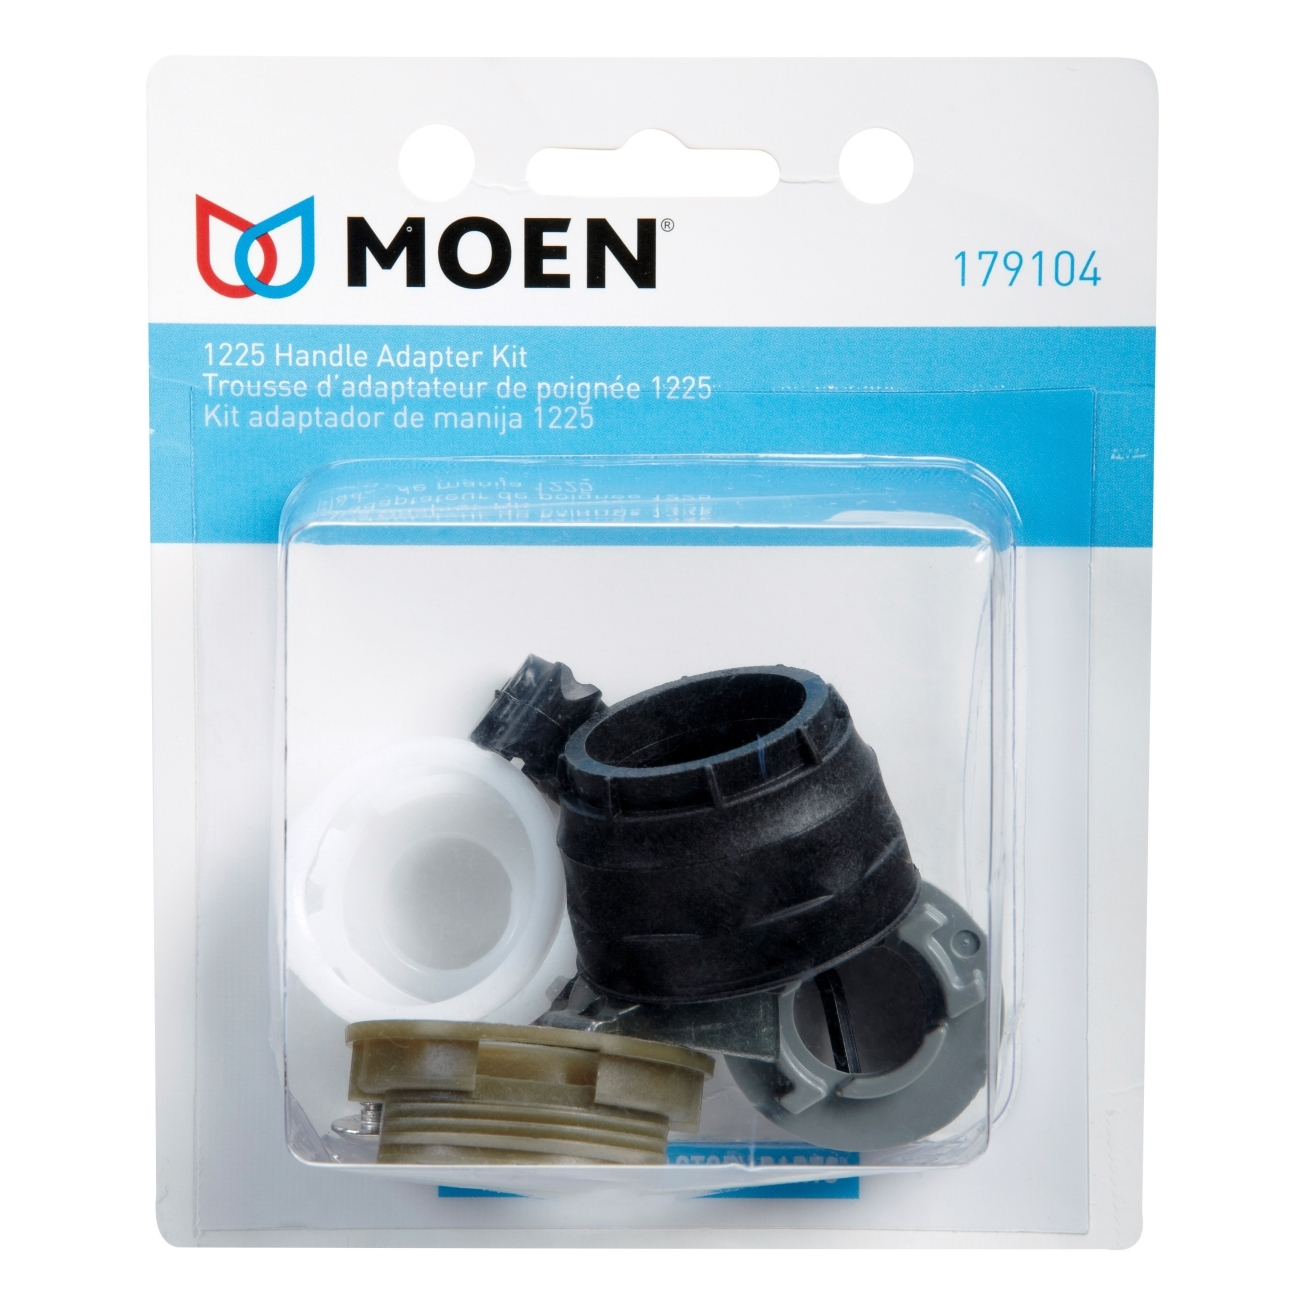 Ideas, moen faucet parts and cartridge replacements at ace hardware intended for proportions 1305 x 1305  .